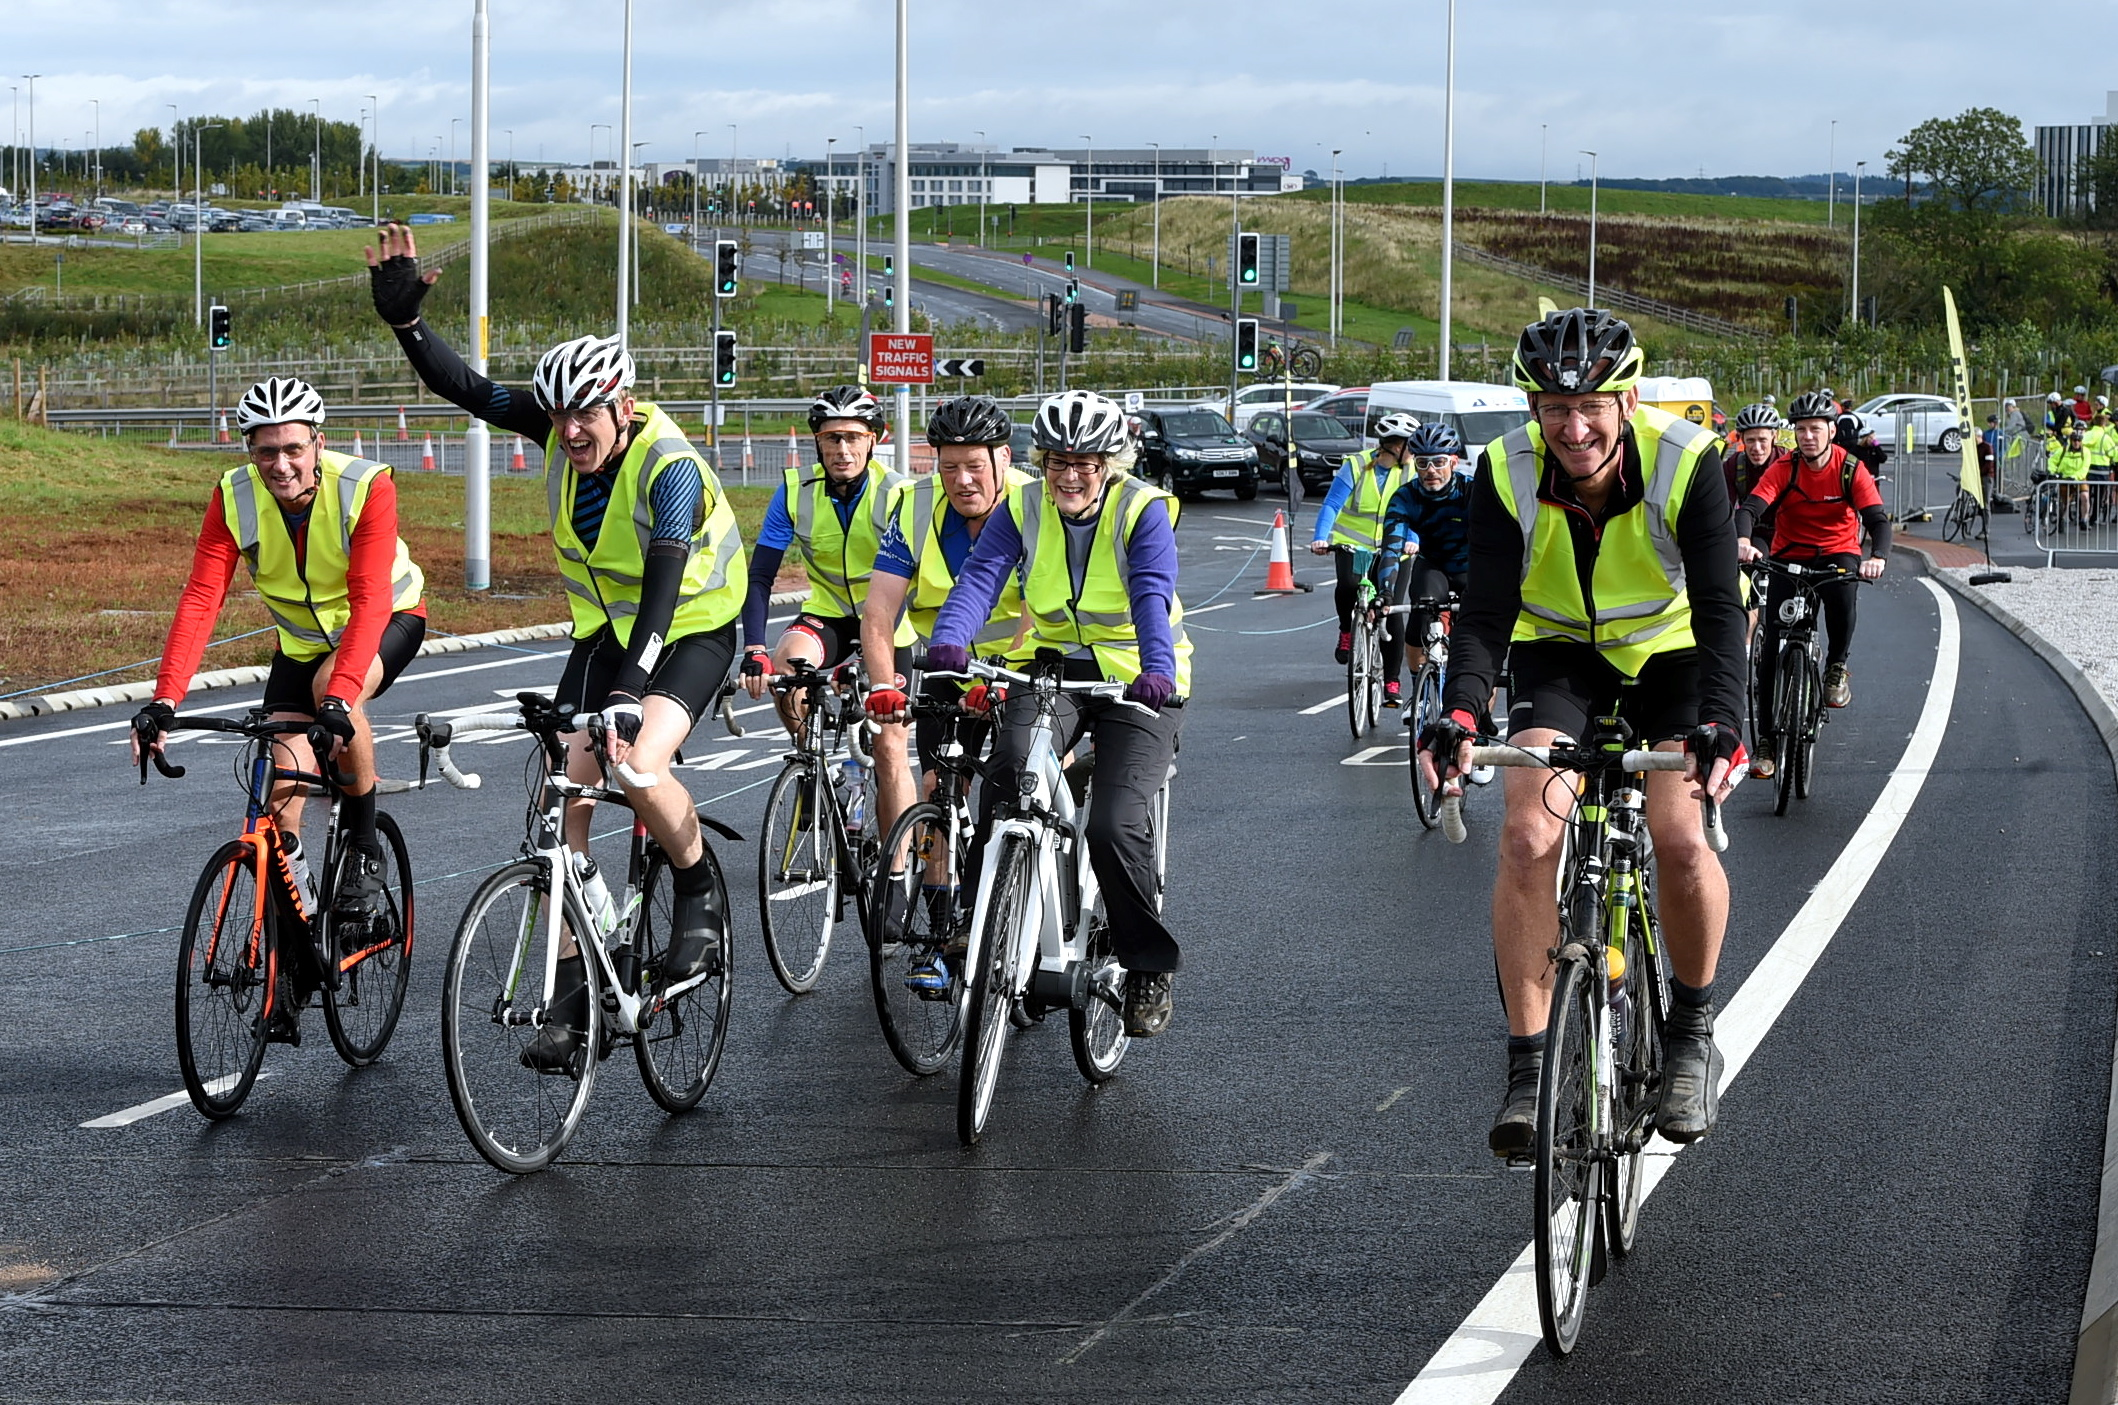 Cyclists at the bike run on the AWPR, Craibstone, part of the GoNorthEast festival event.